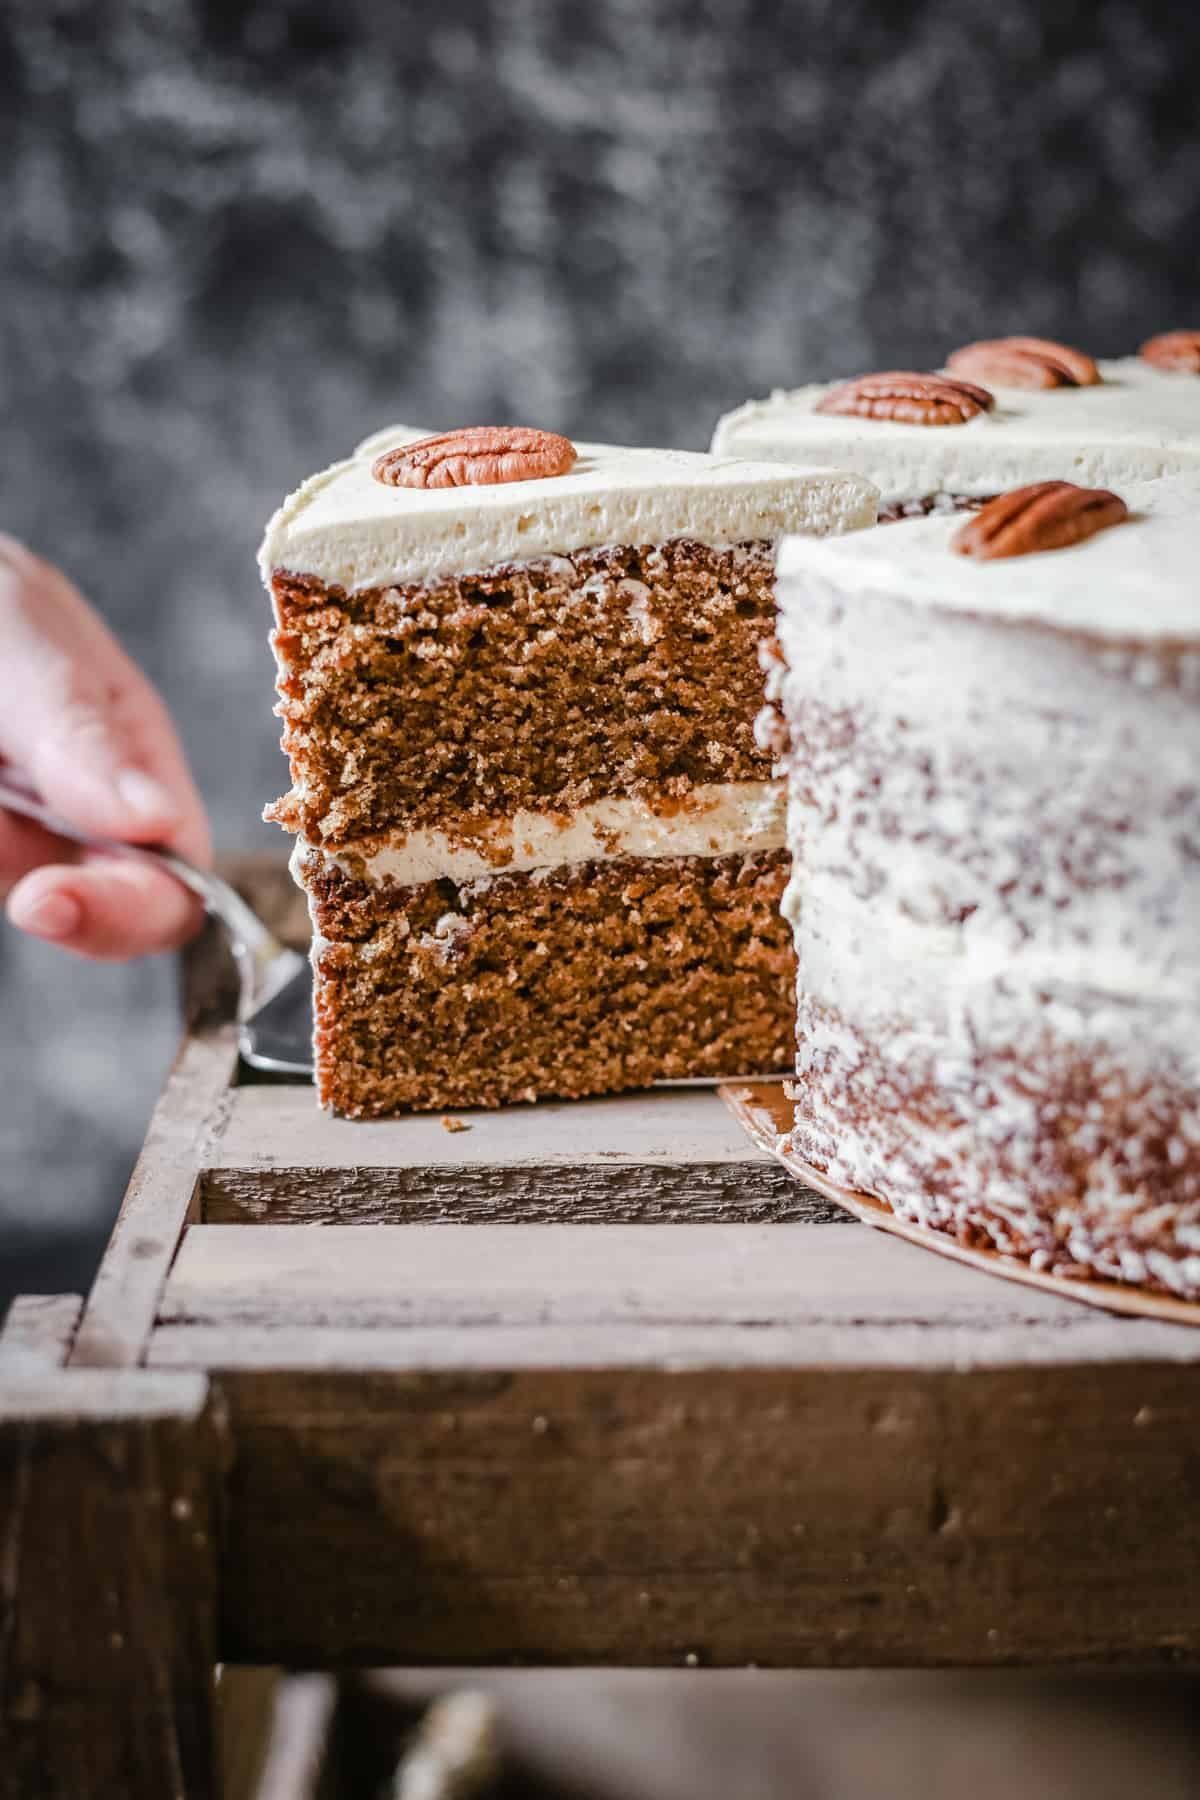 This Pecan Butterscotch Latte Cake is a gluten-free delight, the sponge flavourful with ground pecans, oat flour and muscovado sugar. The buttercream whipped to light perfection with a touch of mascarpone and all imbued with a rich coffee aroma.